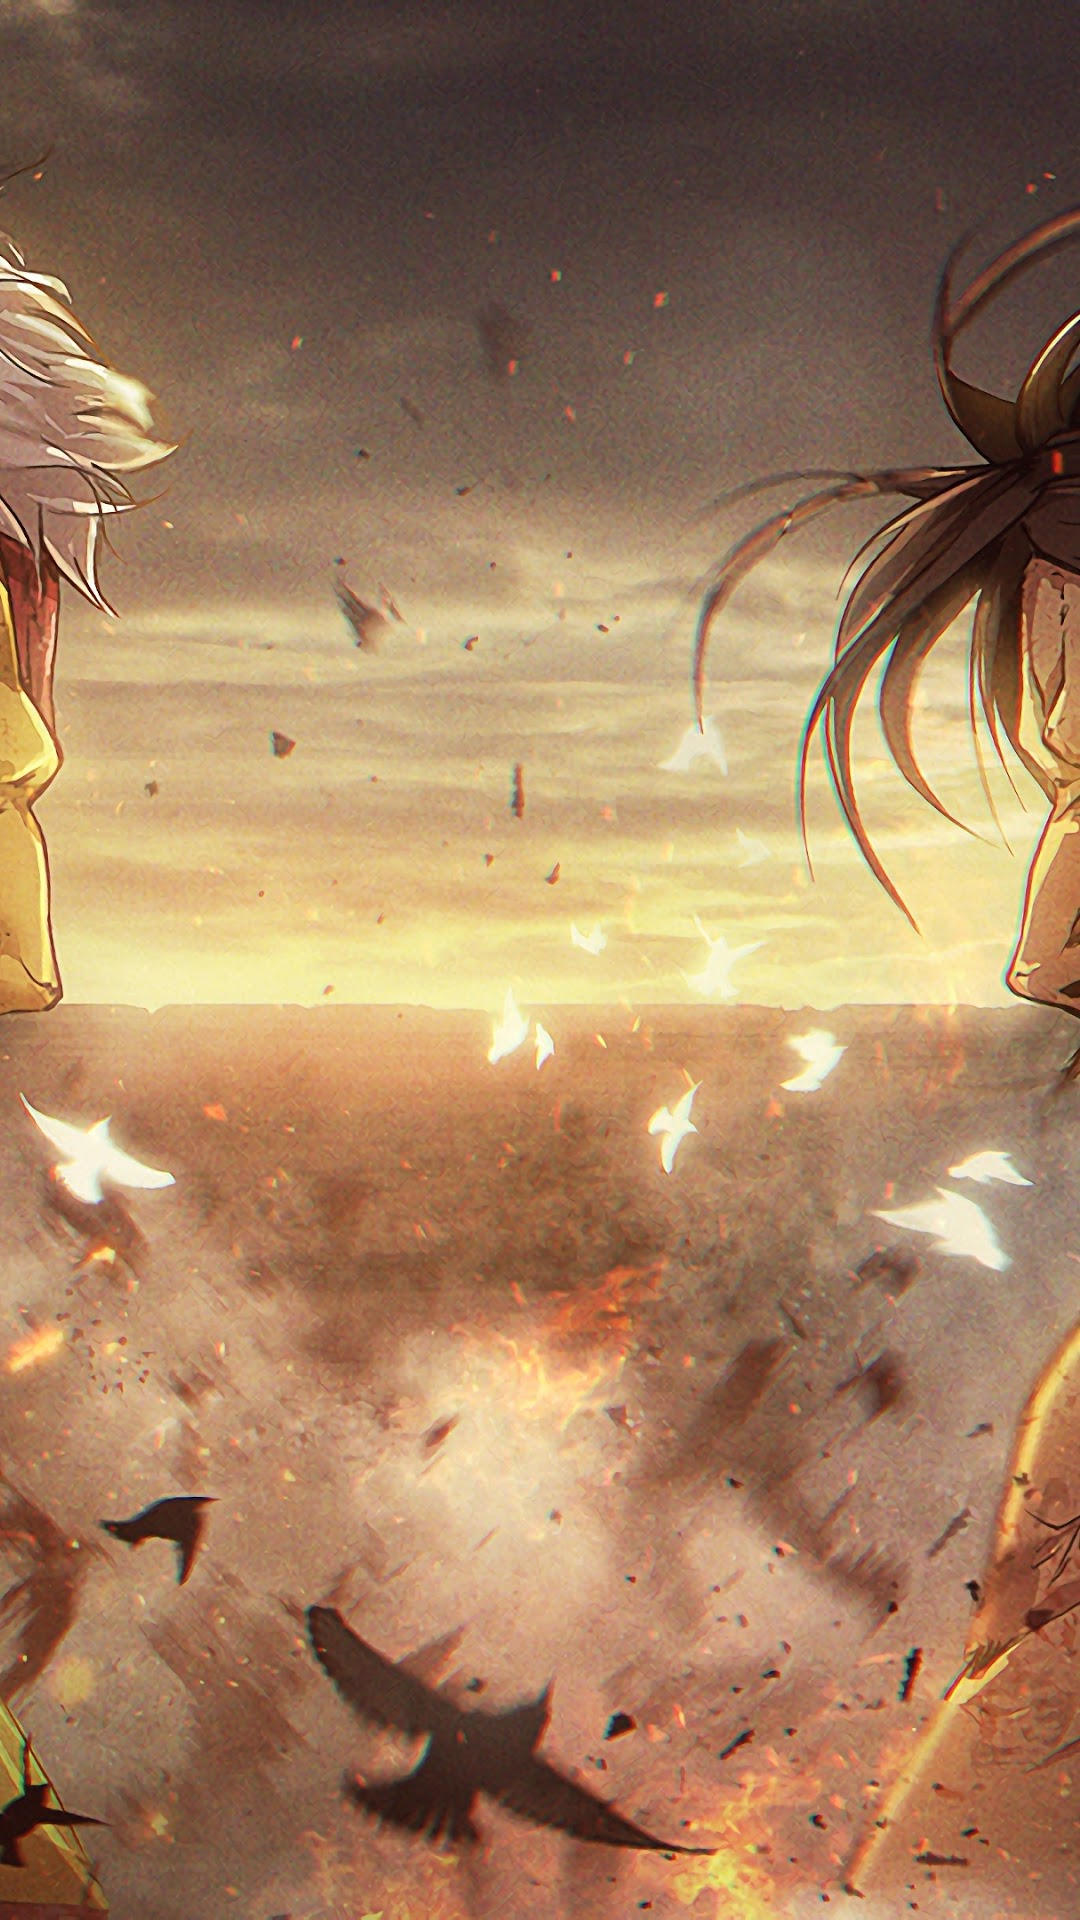 Attack On Titan Hd Wallpapers Kolpaper Awesome Free Hd Wallpapers